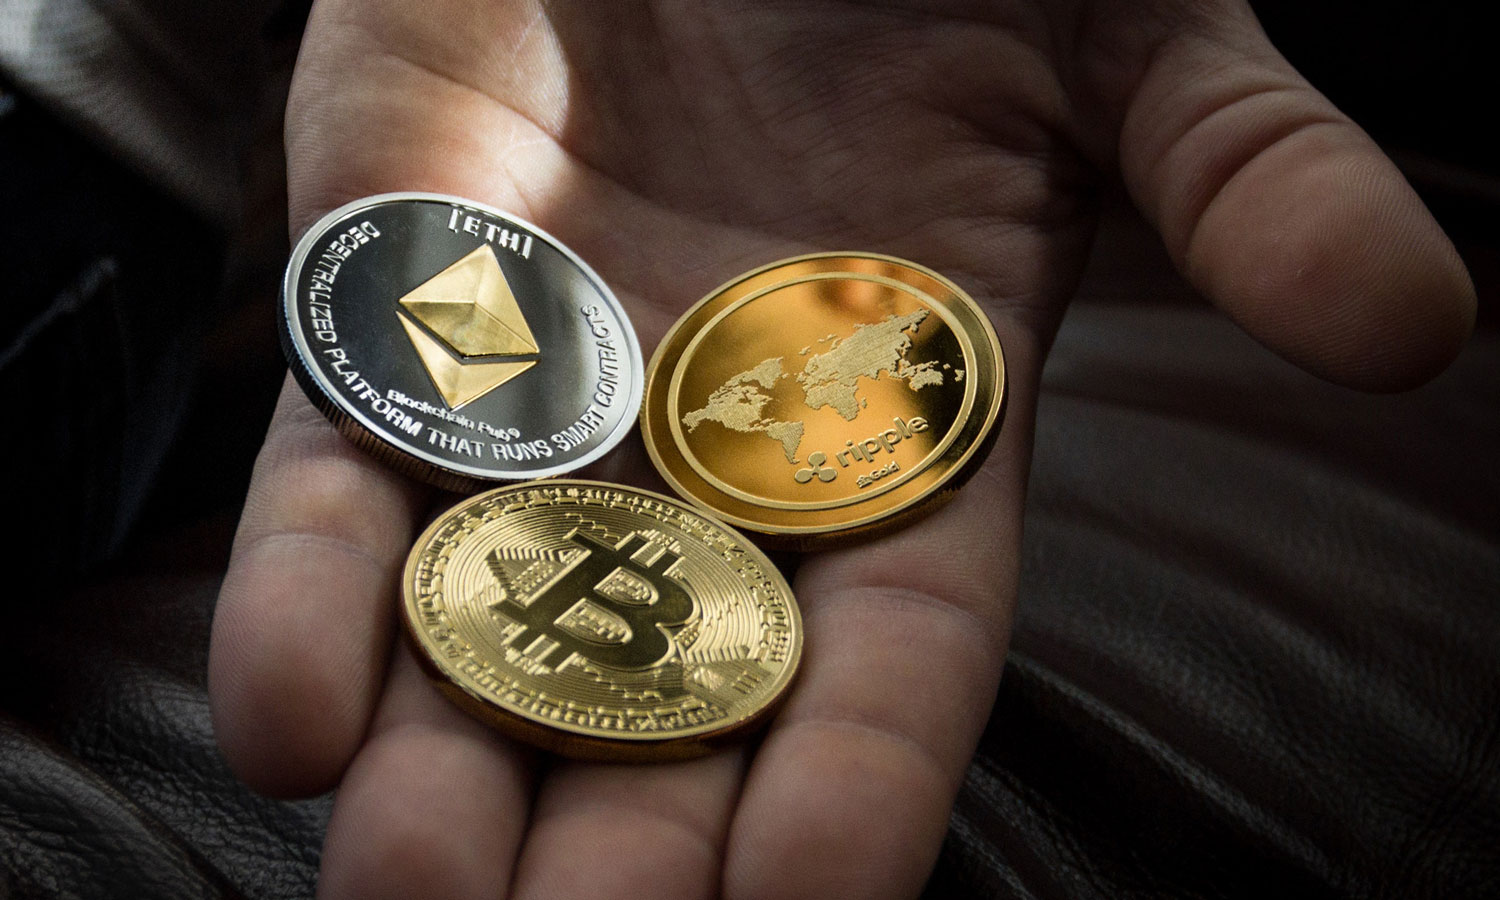 A hand holding coins with digital currencies on the faces